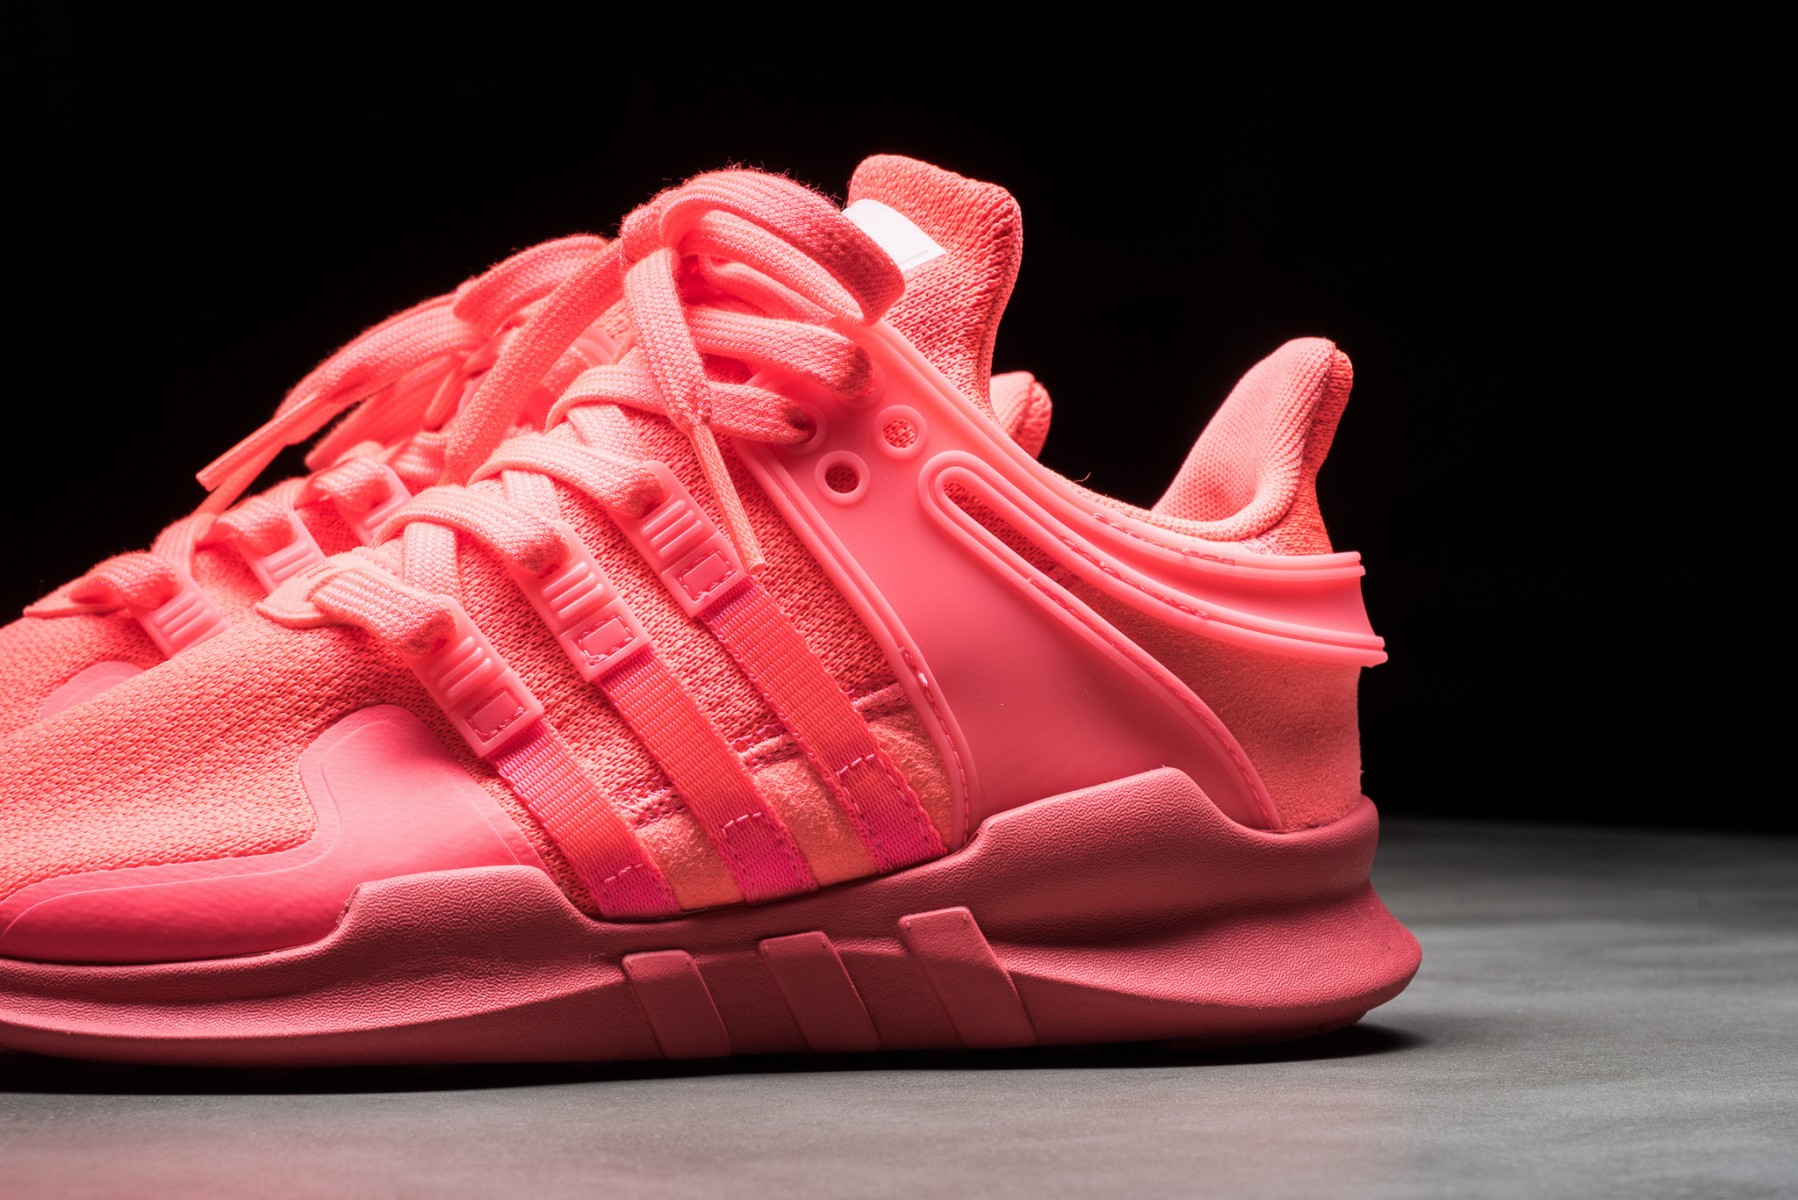 adidas-eqt-advance-support-hot-pink-3-1798x1200